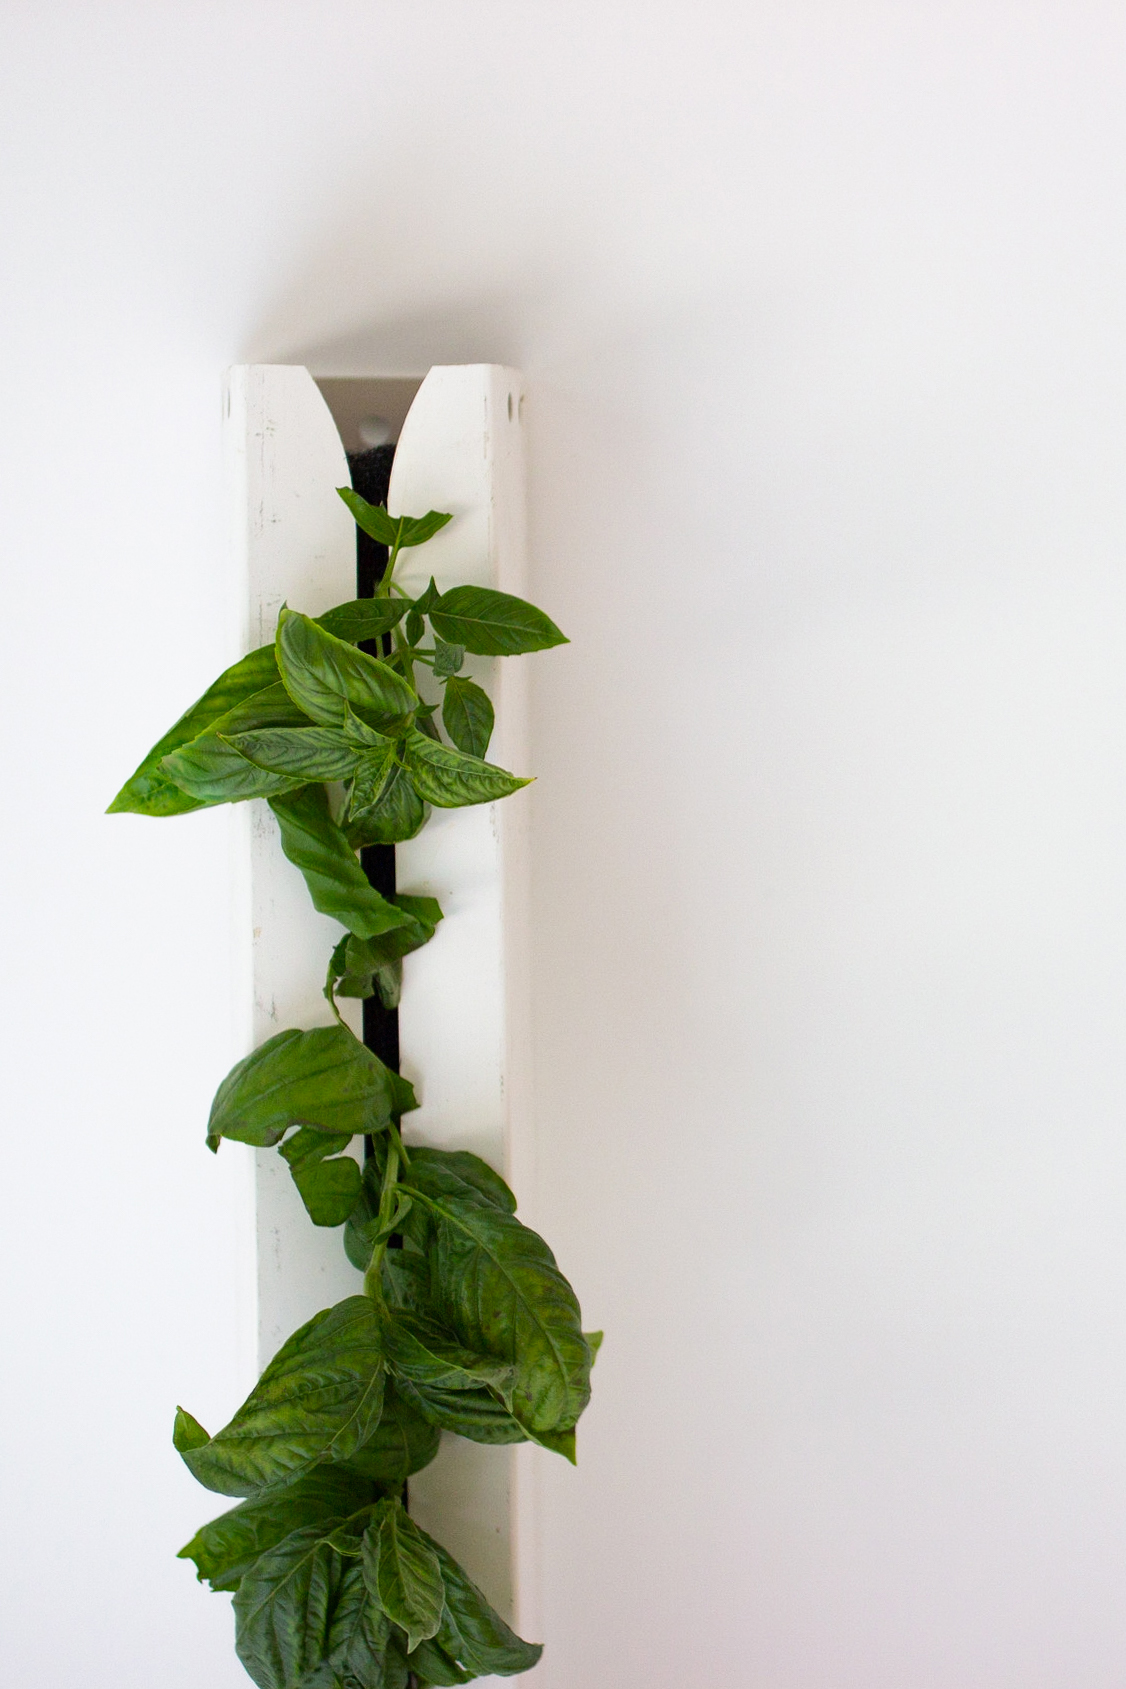 Our heirloom genovese basil is grown vertically. Cultivated in a soilless medium and combined with the latest LED lighting, we use 80% fewer resources than field-grown basil.